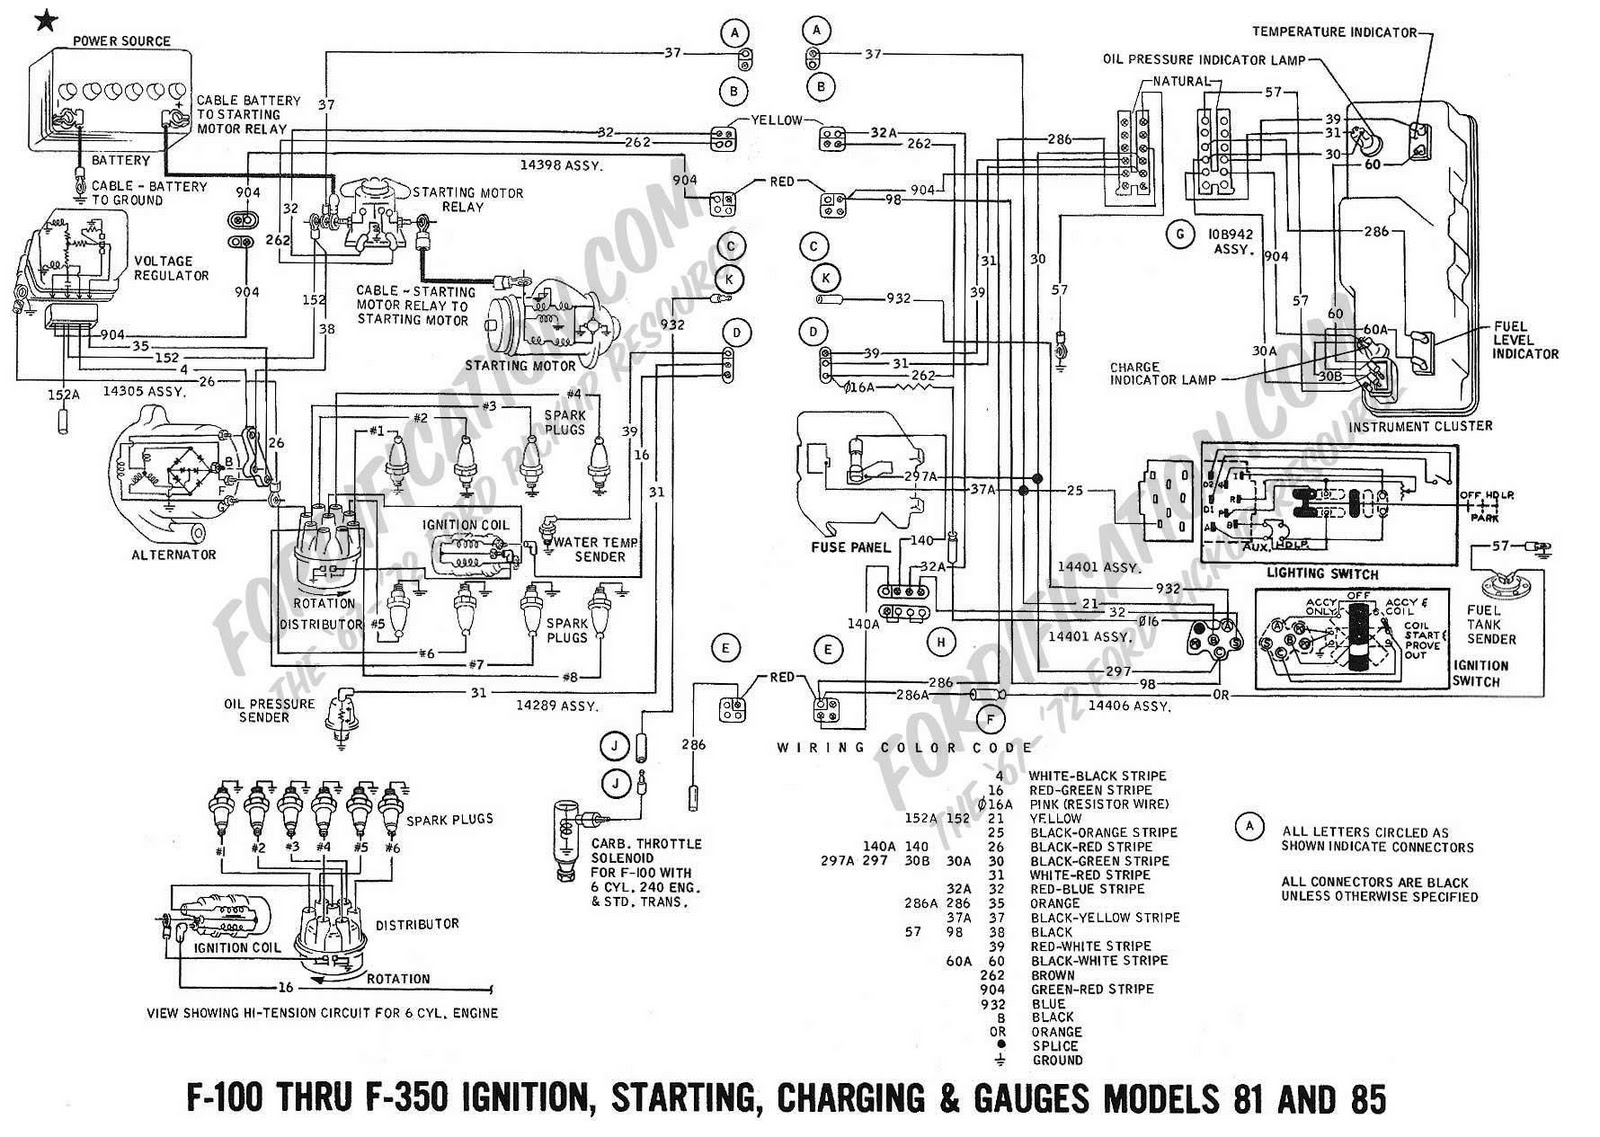 1963 Ford F100 Wiring Diagram Pirate Ship Inside 1967 Galaxie 1959 All Data